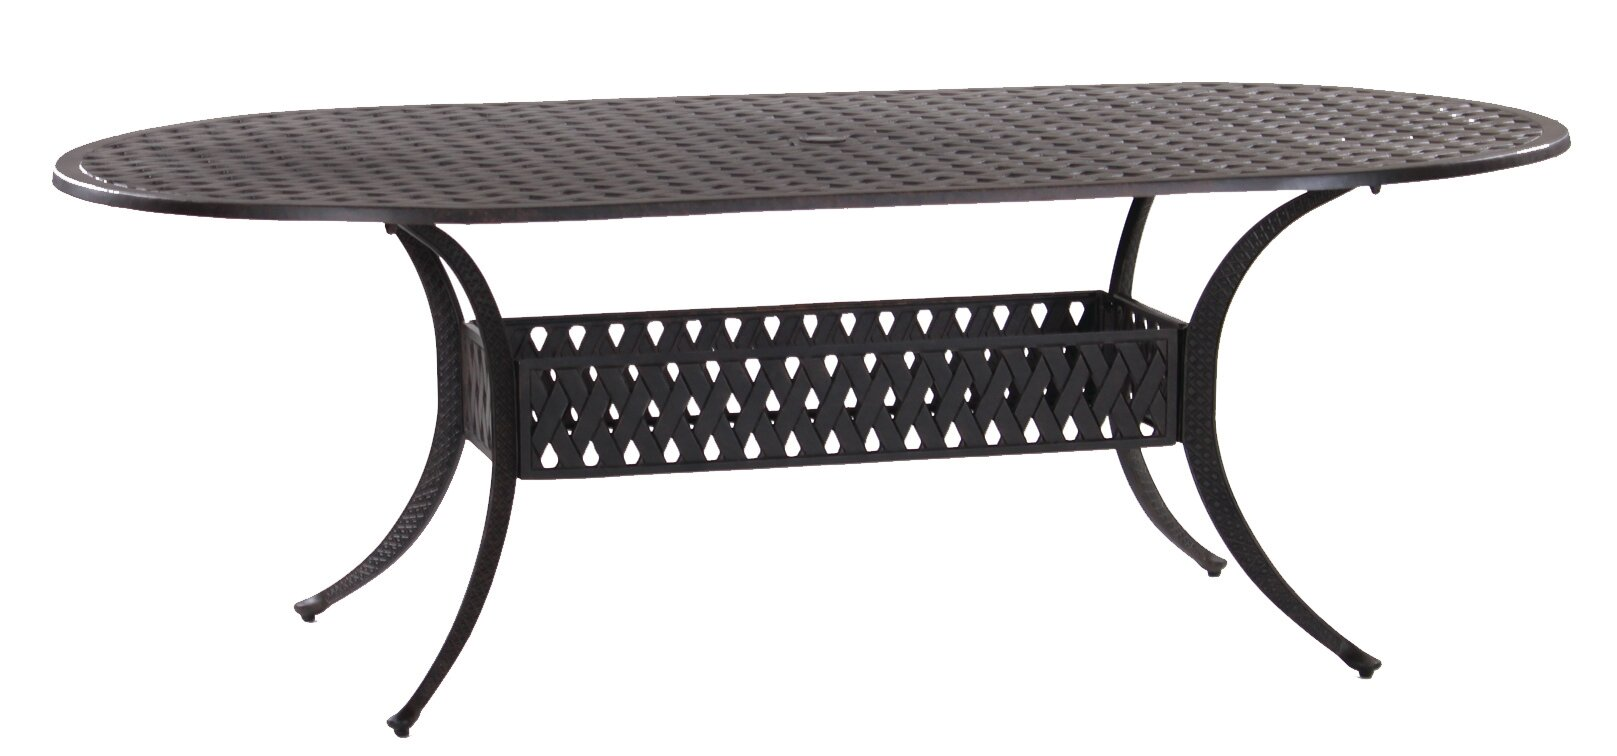 Amazing Basket Weave Oval Cast Aluminum Dining Table